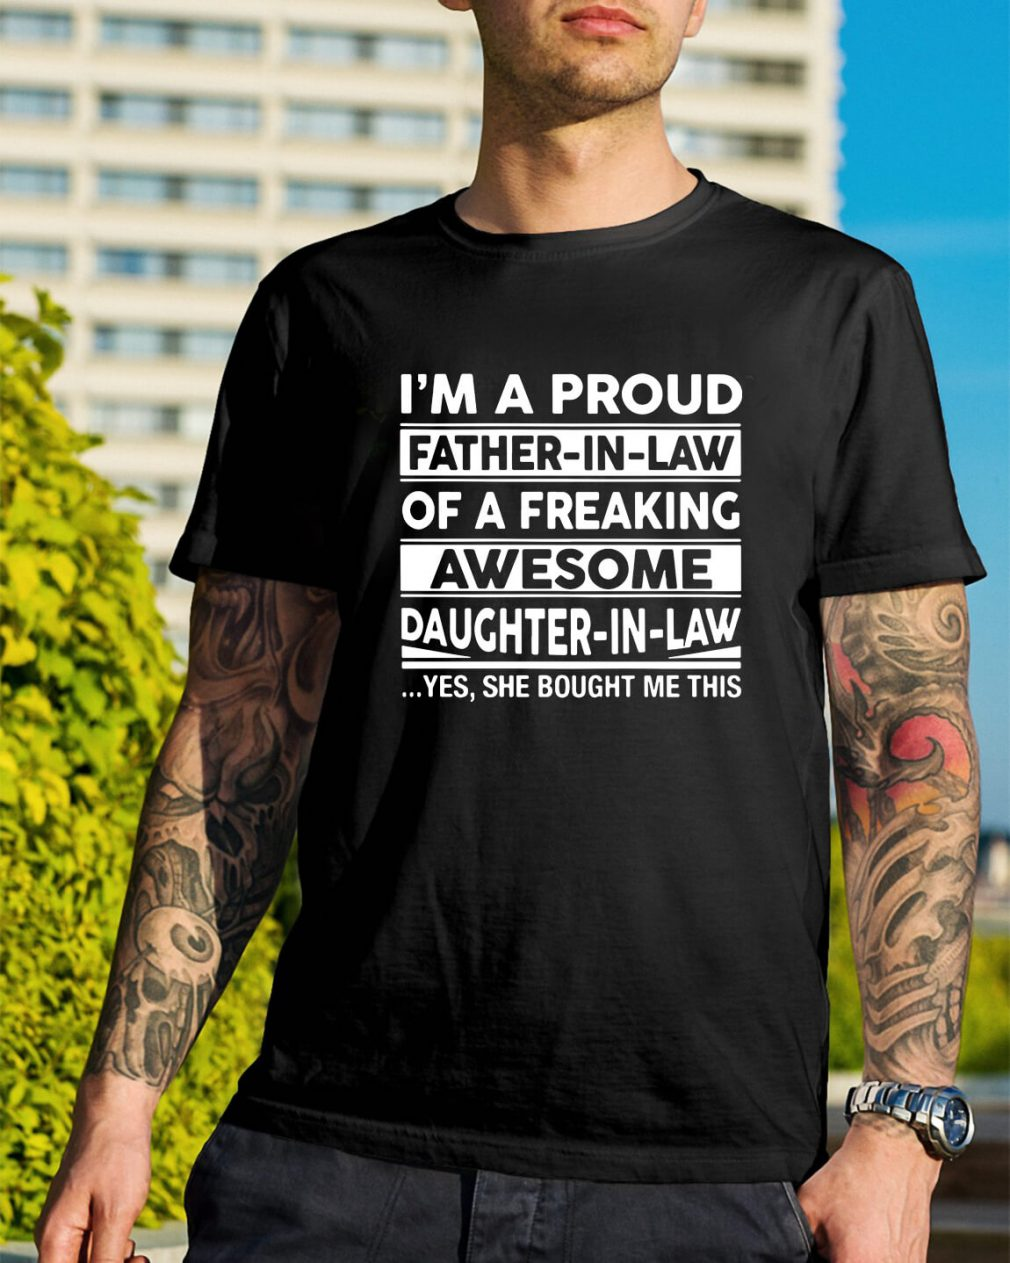 I'm a proud father-in-law of a freaking awesome daughter-in-law shirt